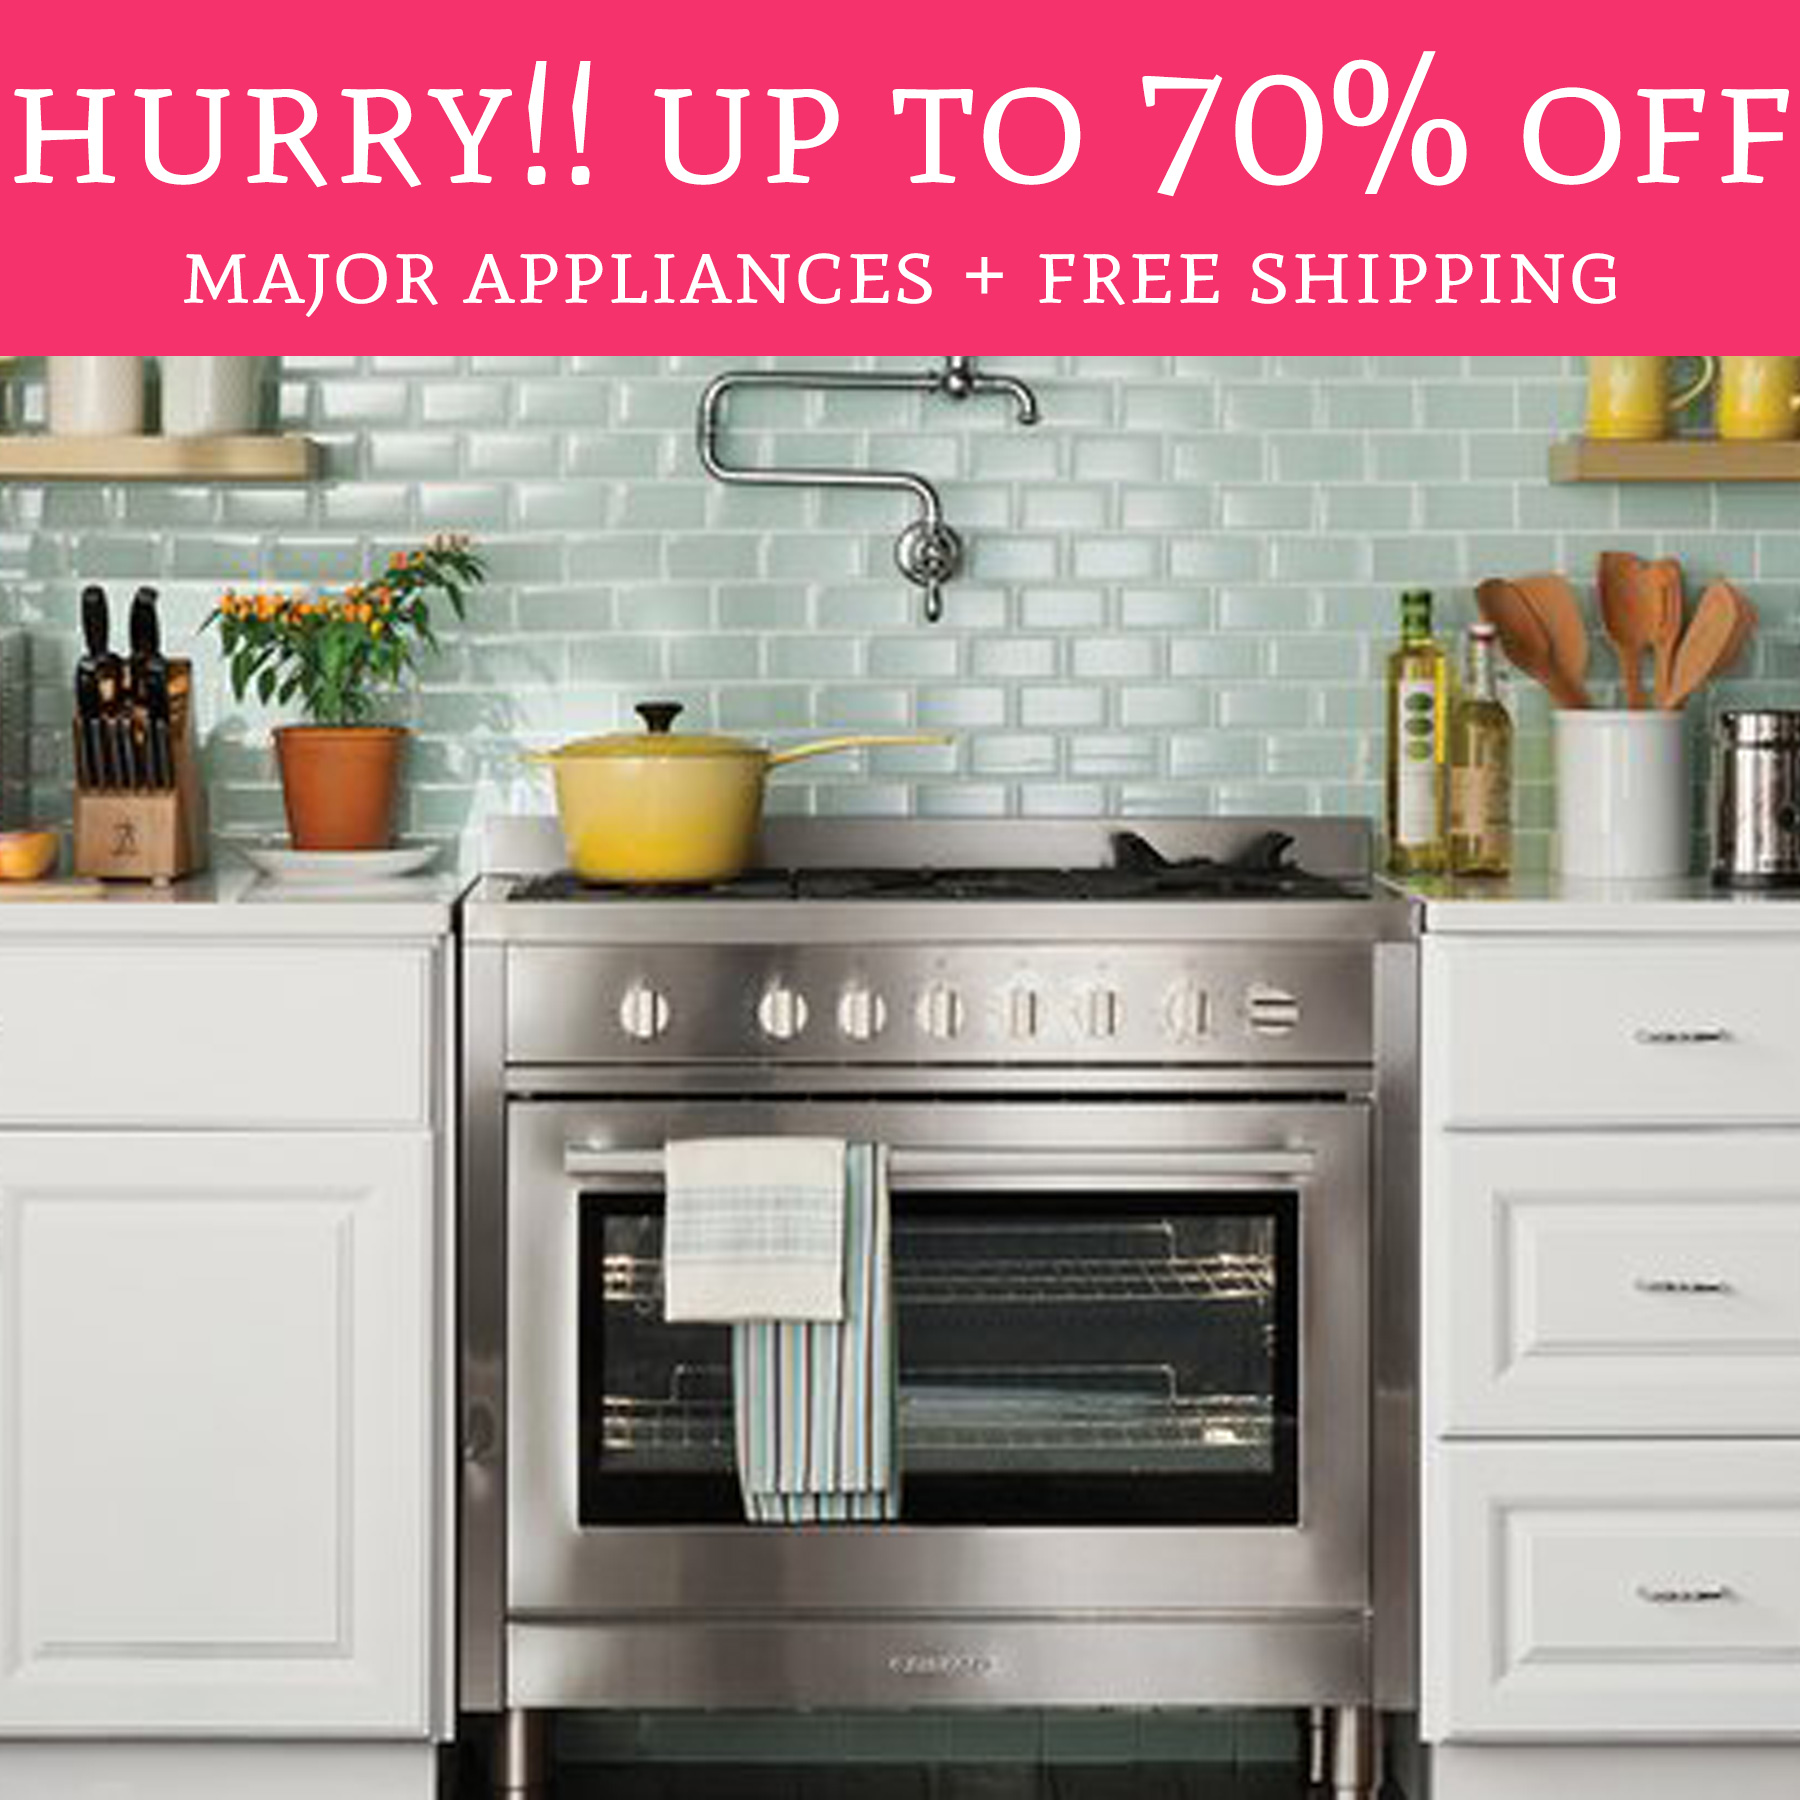 Samsung appliances coupon codes